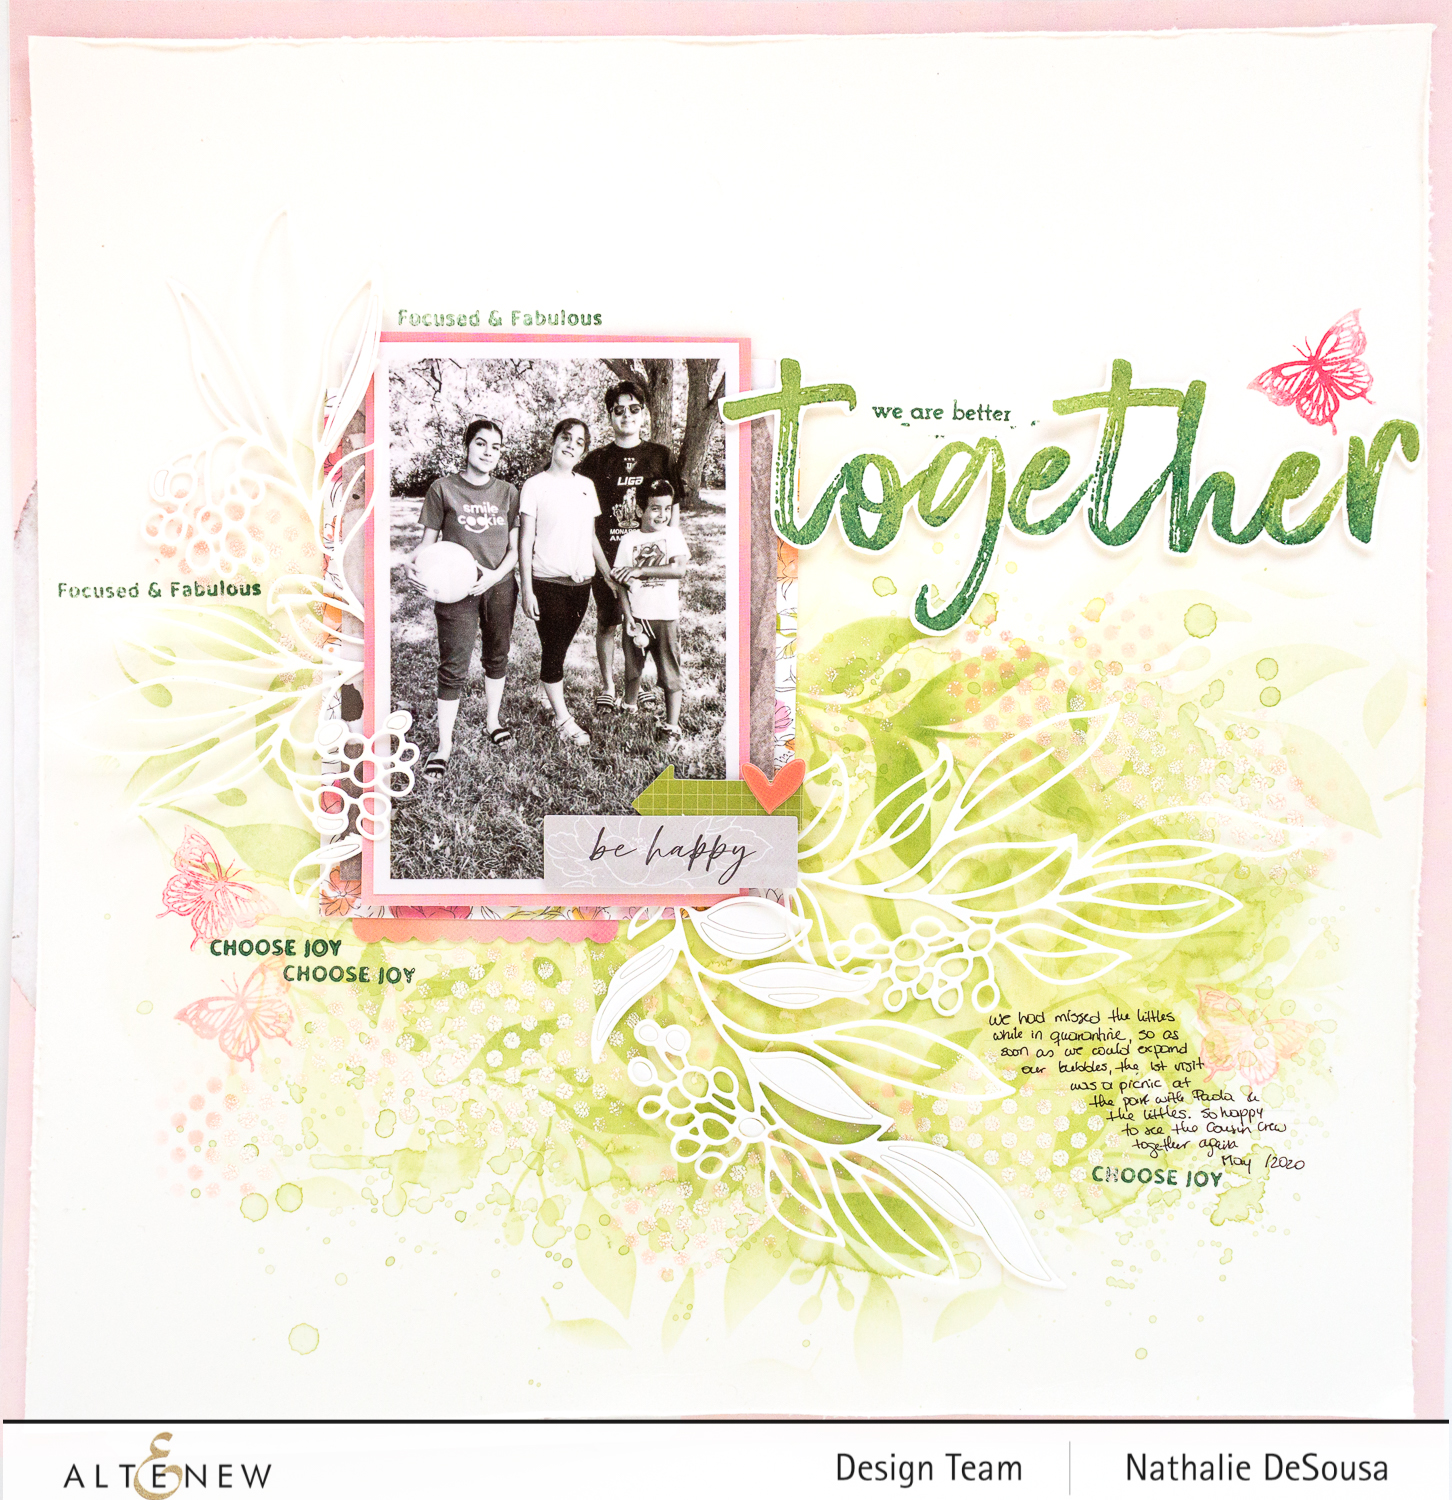 @Altenew_ Scrapbook Layout using Mixed media inks by Nathalie DeSousa